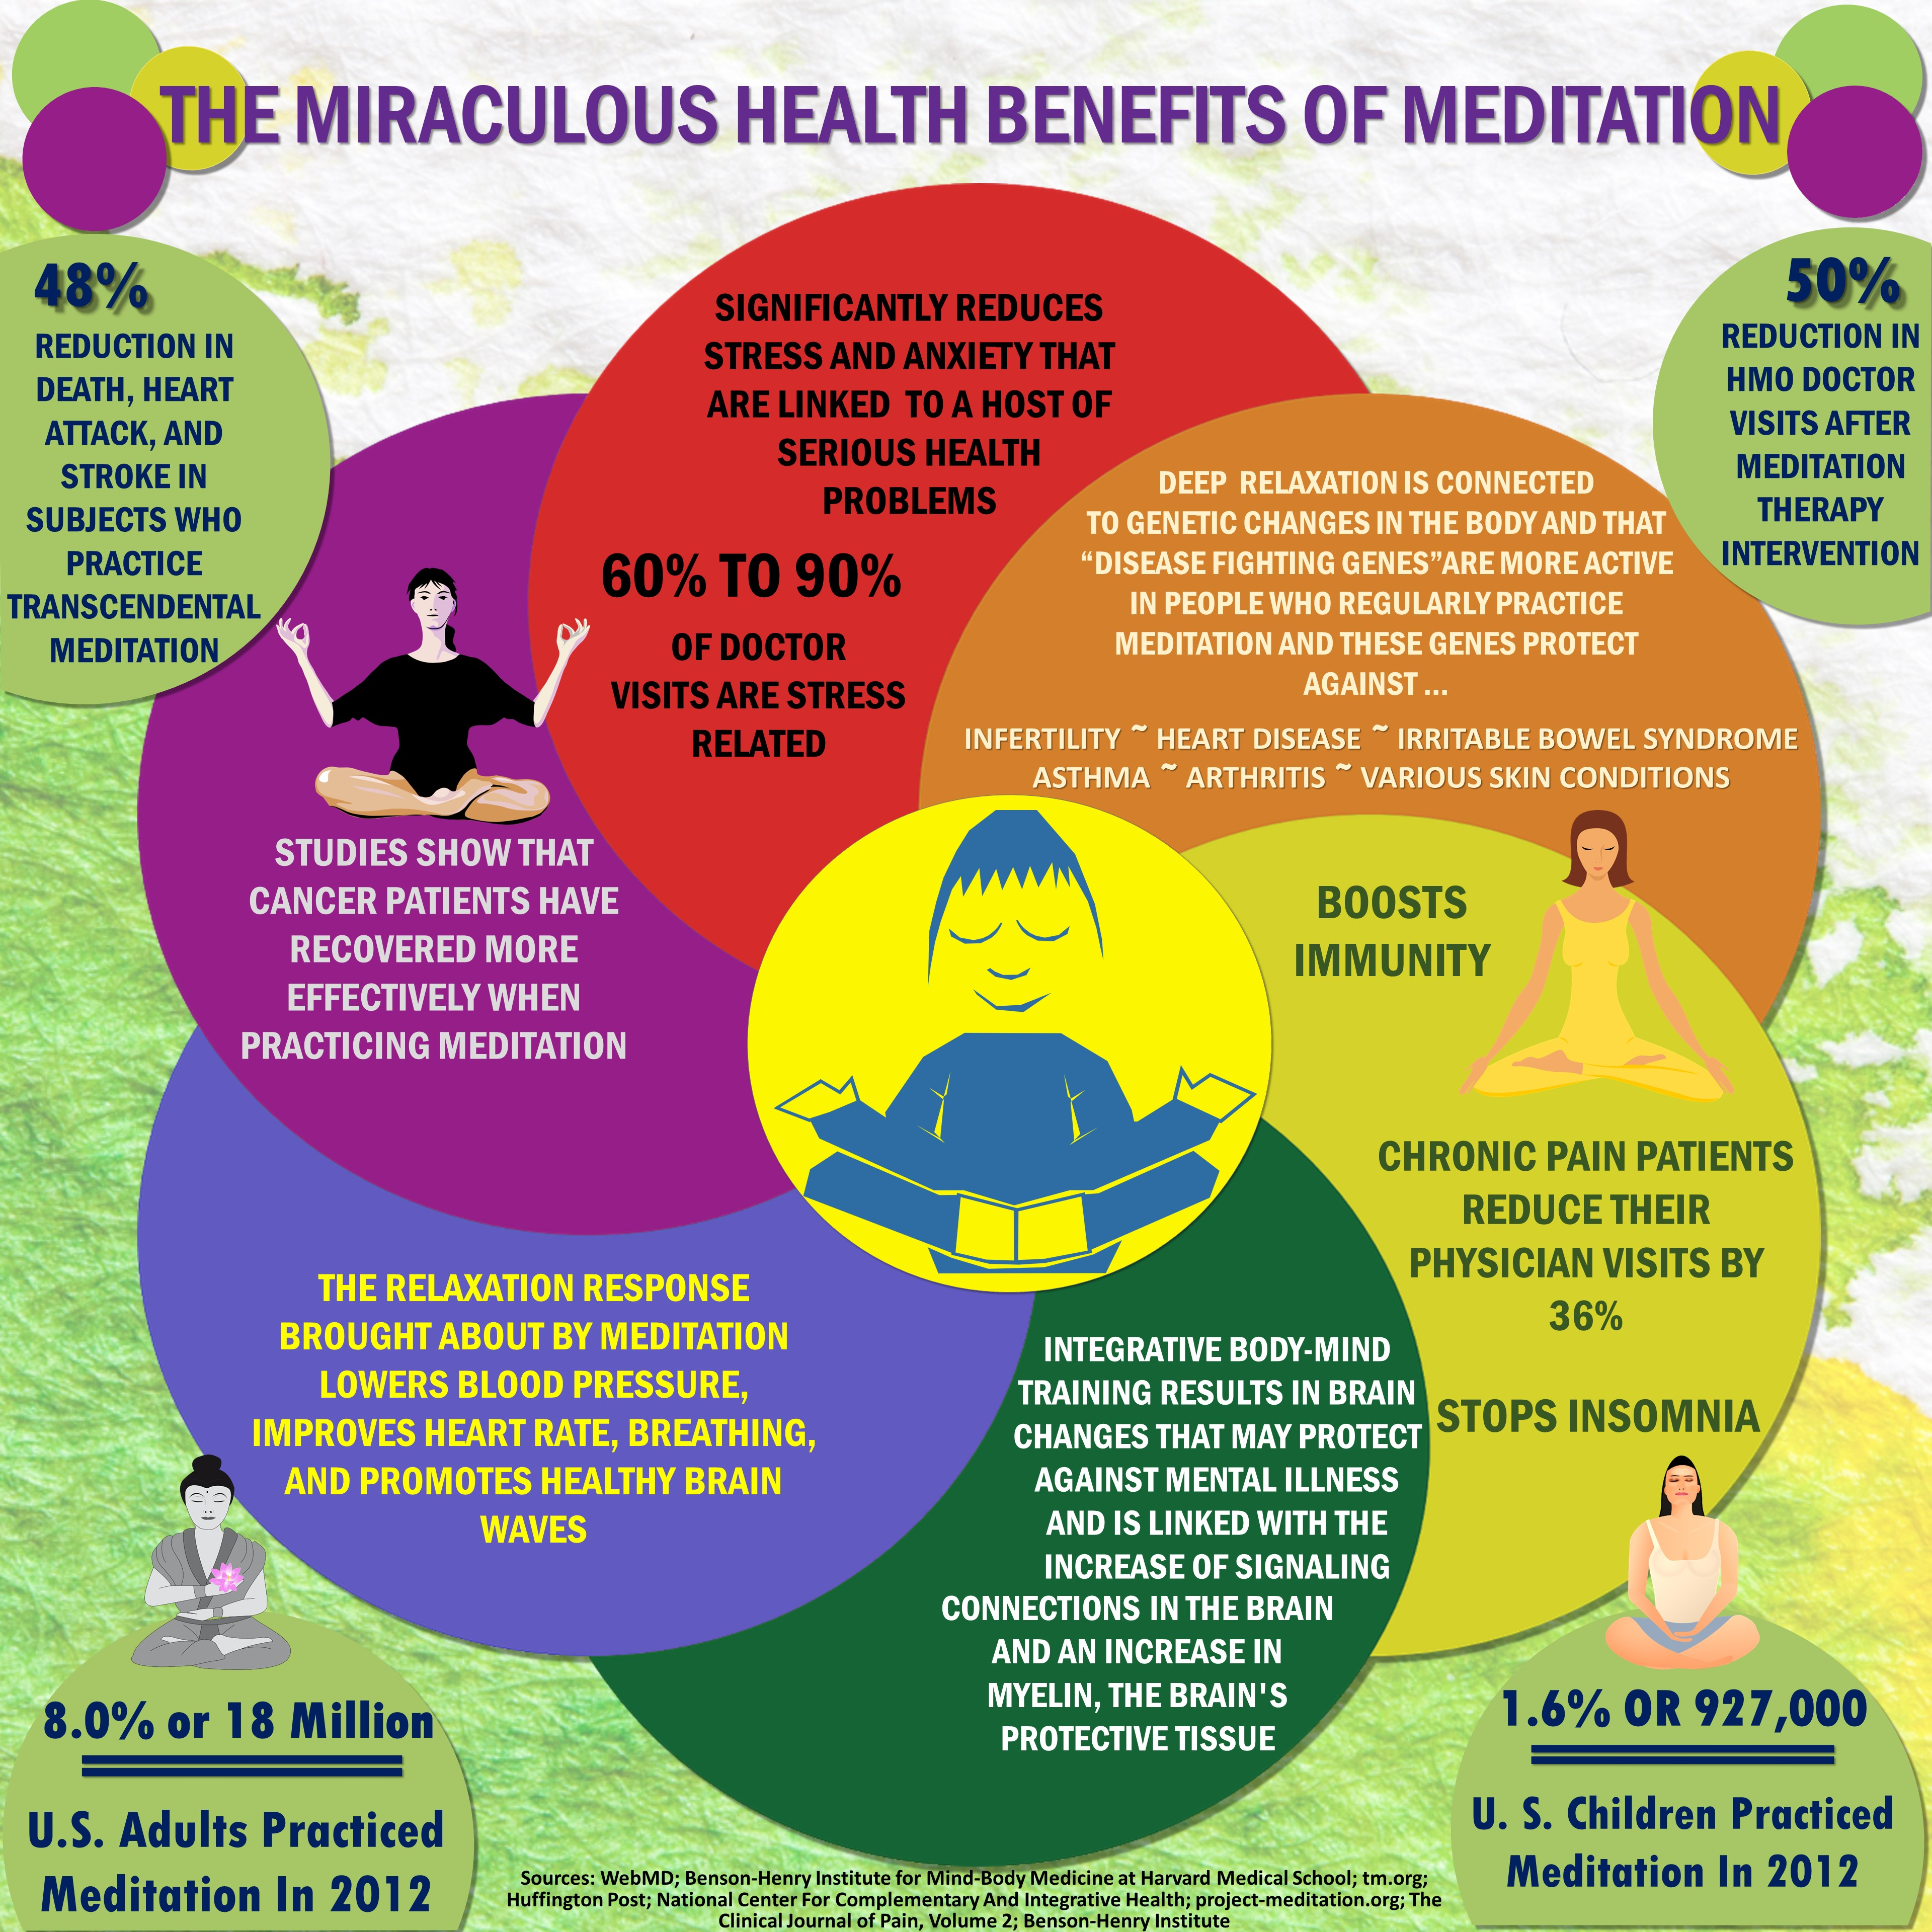 The Health Benefits of Meditation